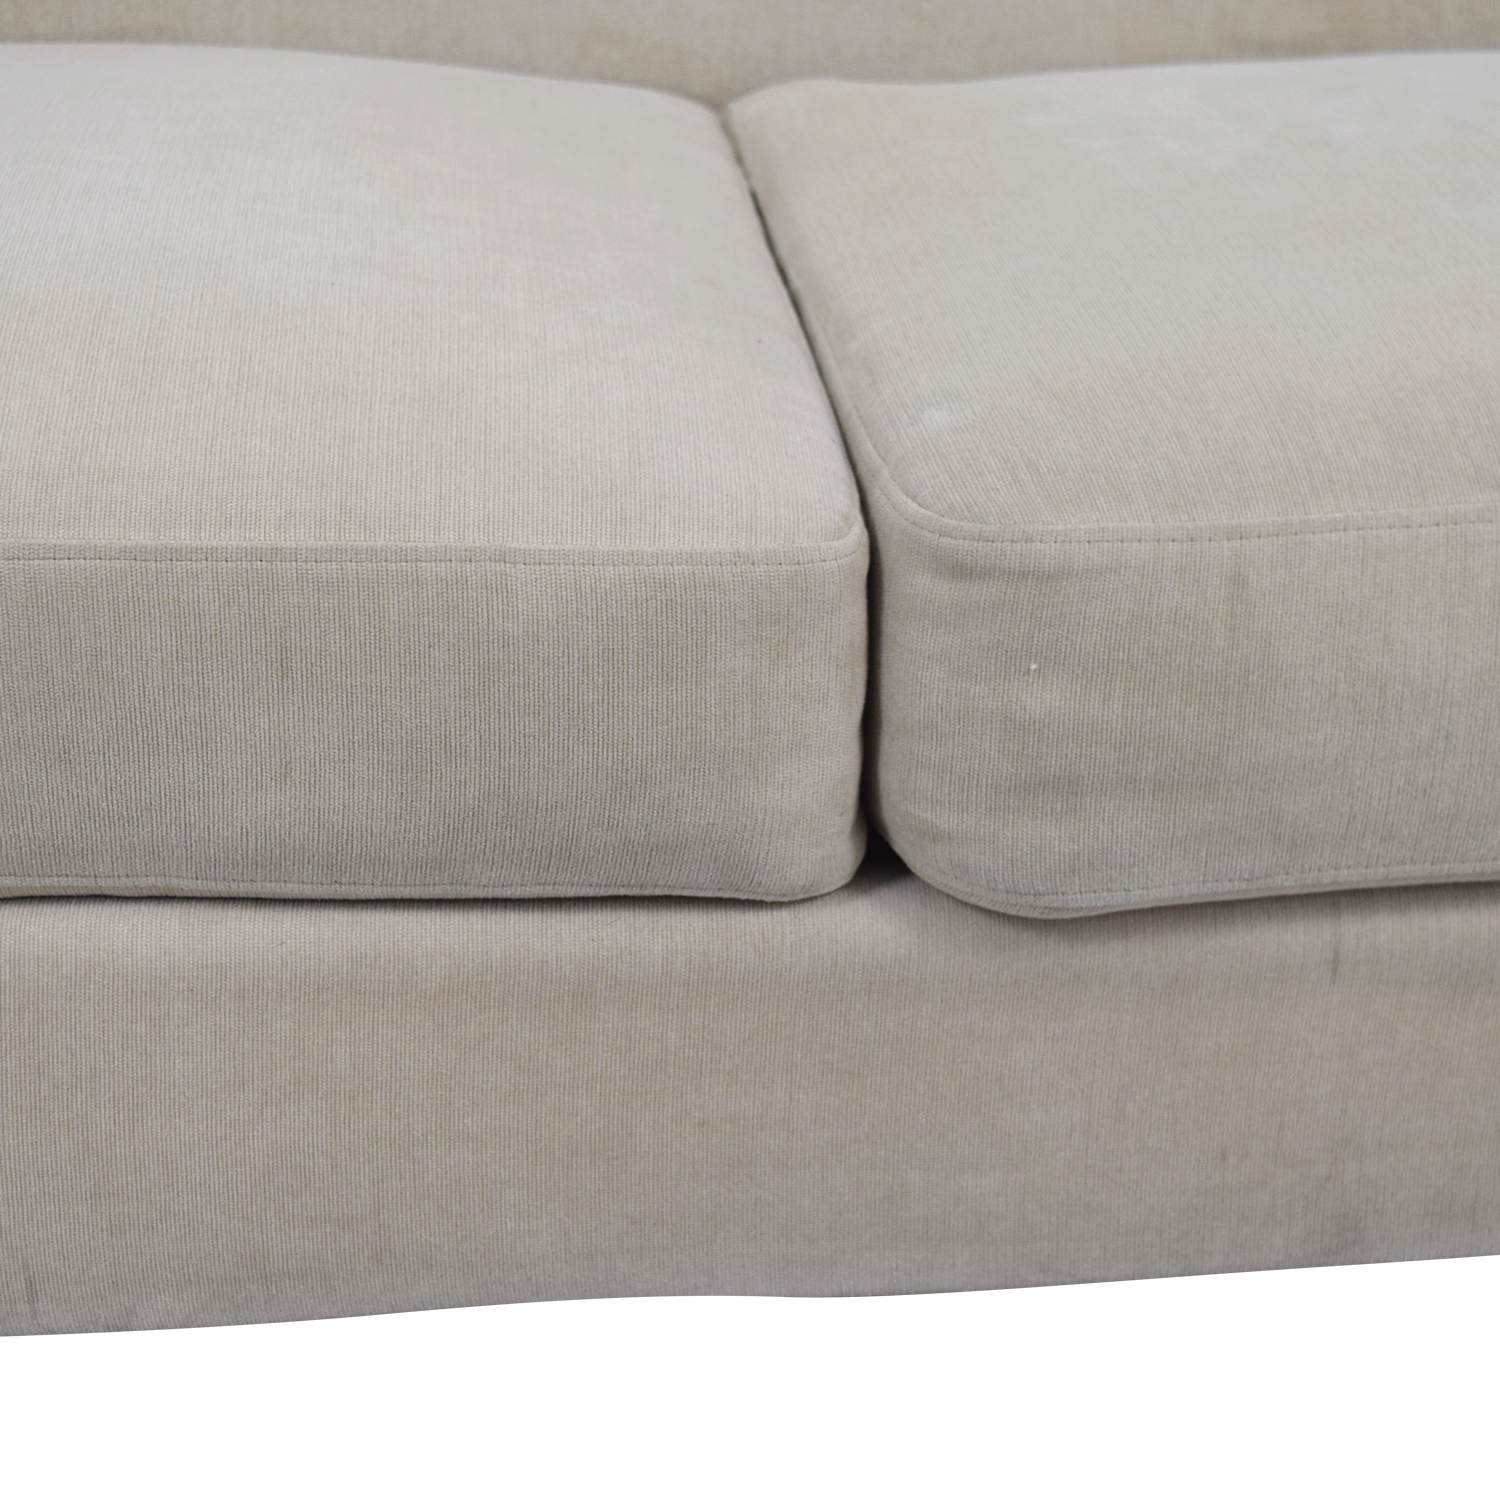 Raymour and Flanigan Raymour & Flanigan Beige Tufted Couch beige